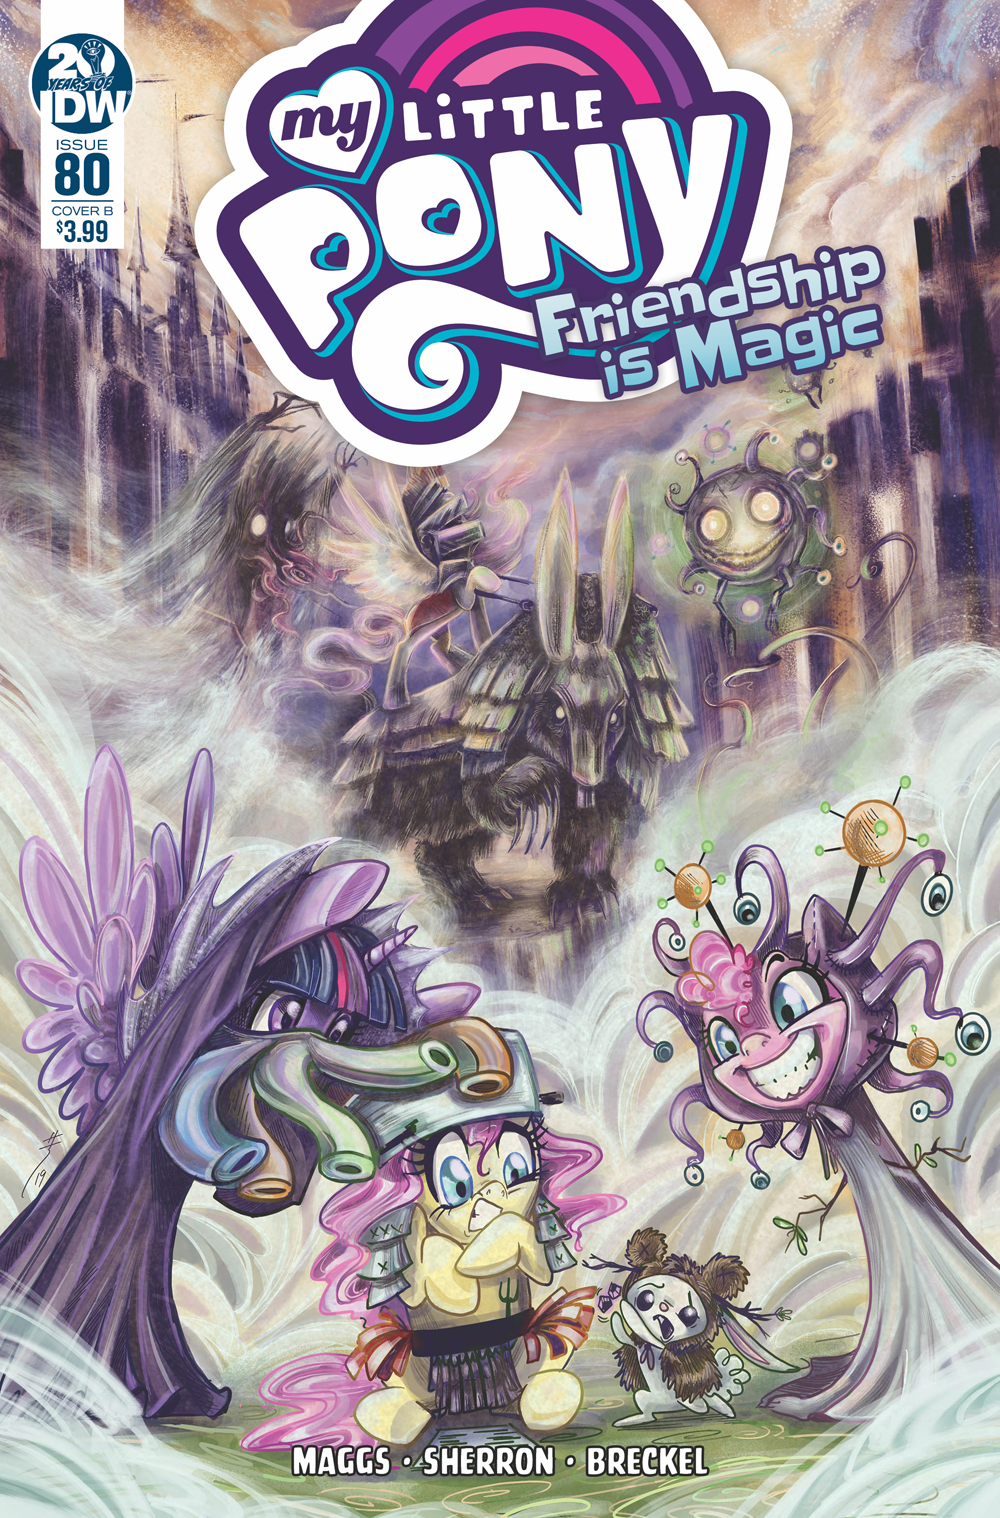 MY LITTLE PONY FRIENDSHIP IS MAGIC #80 CVR B RICHARD